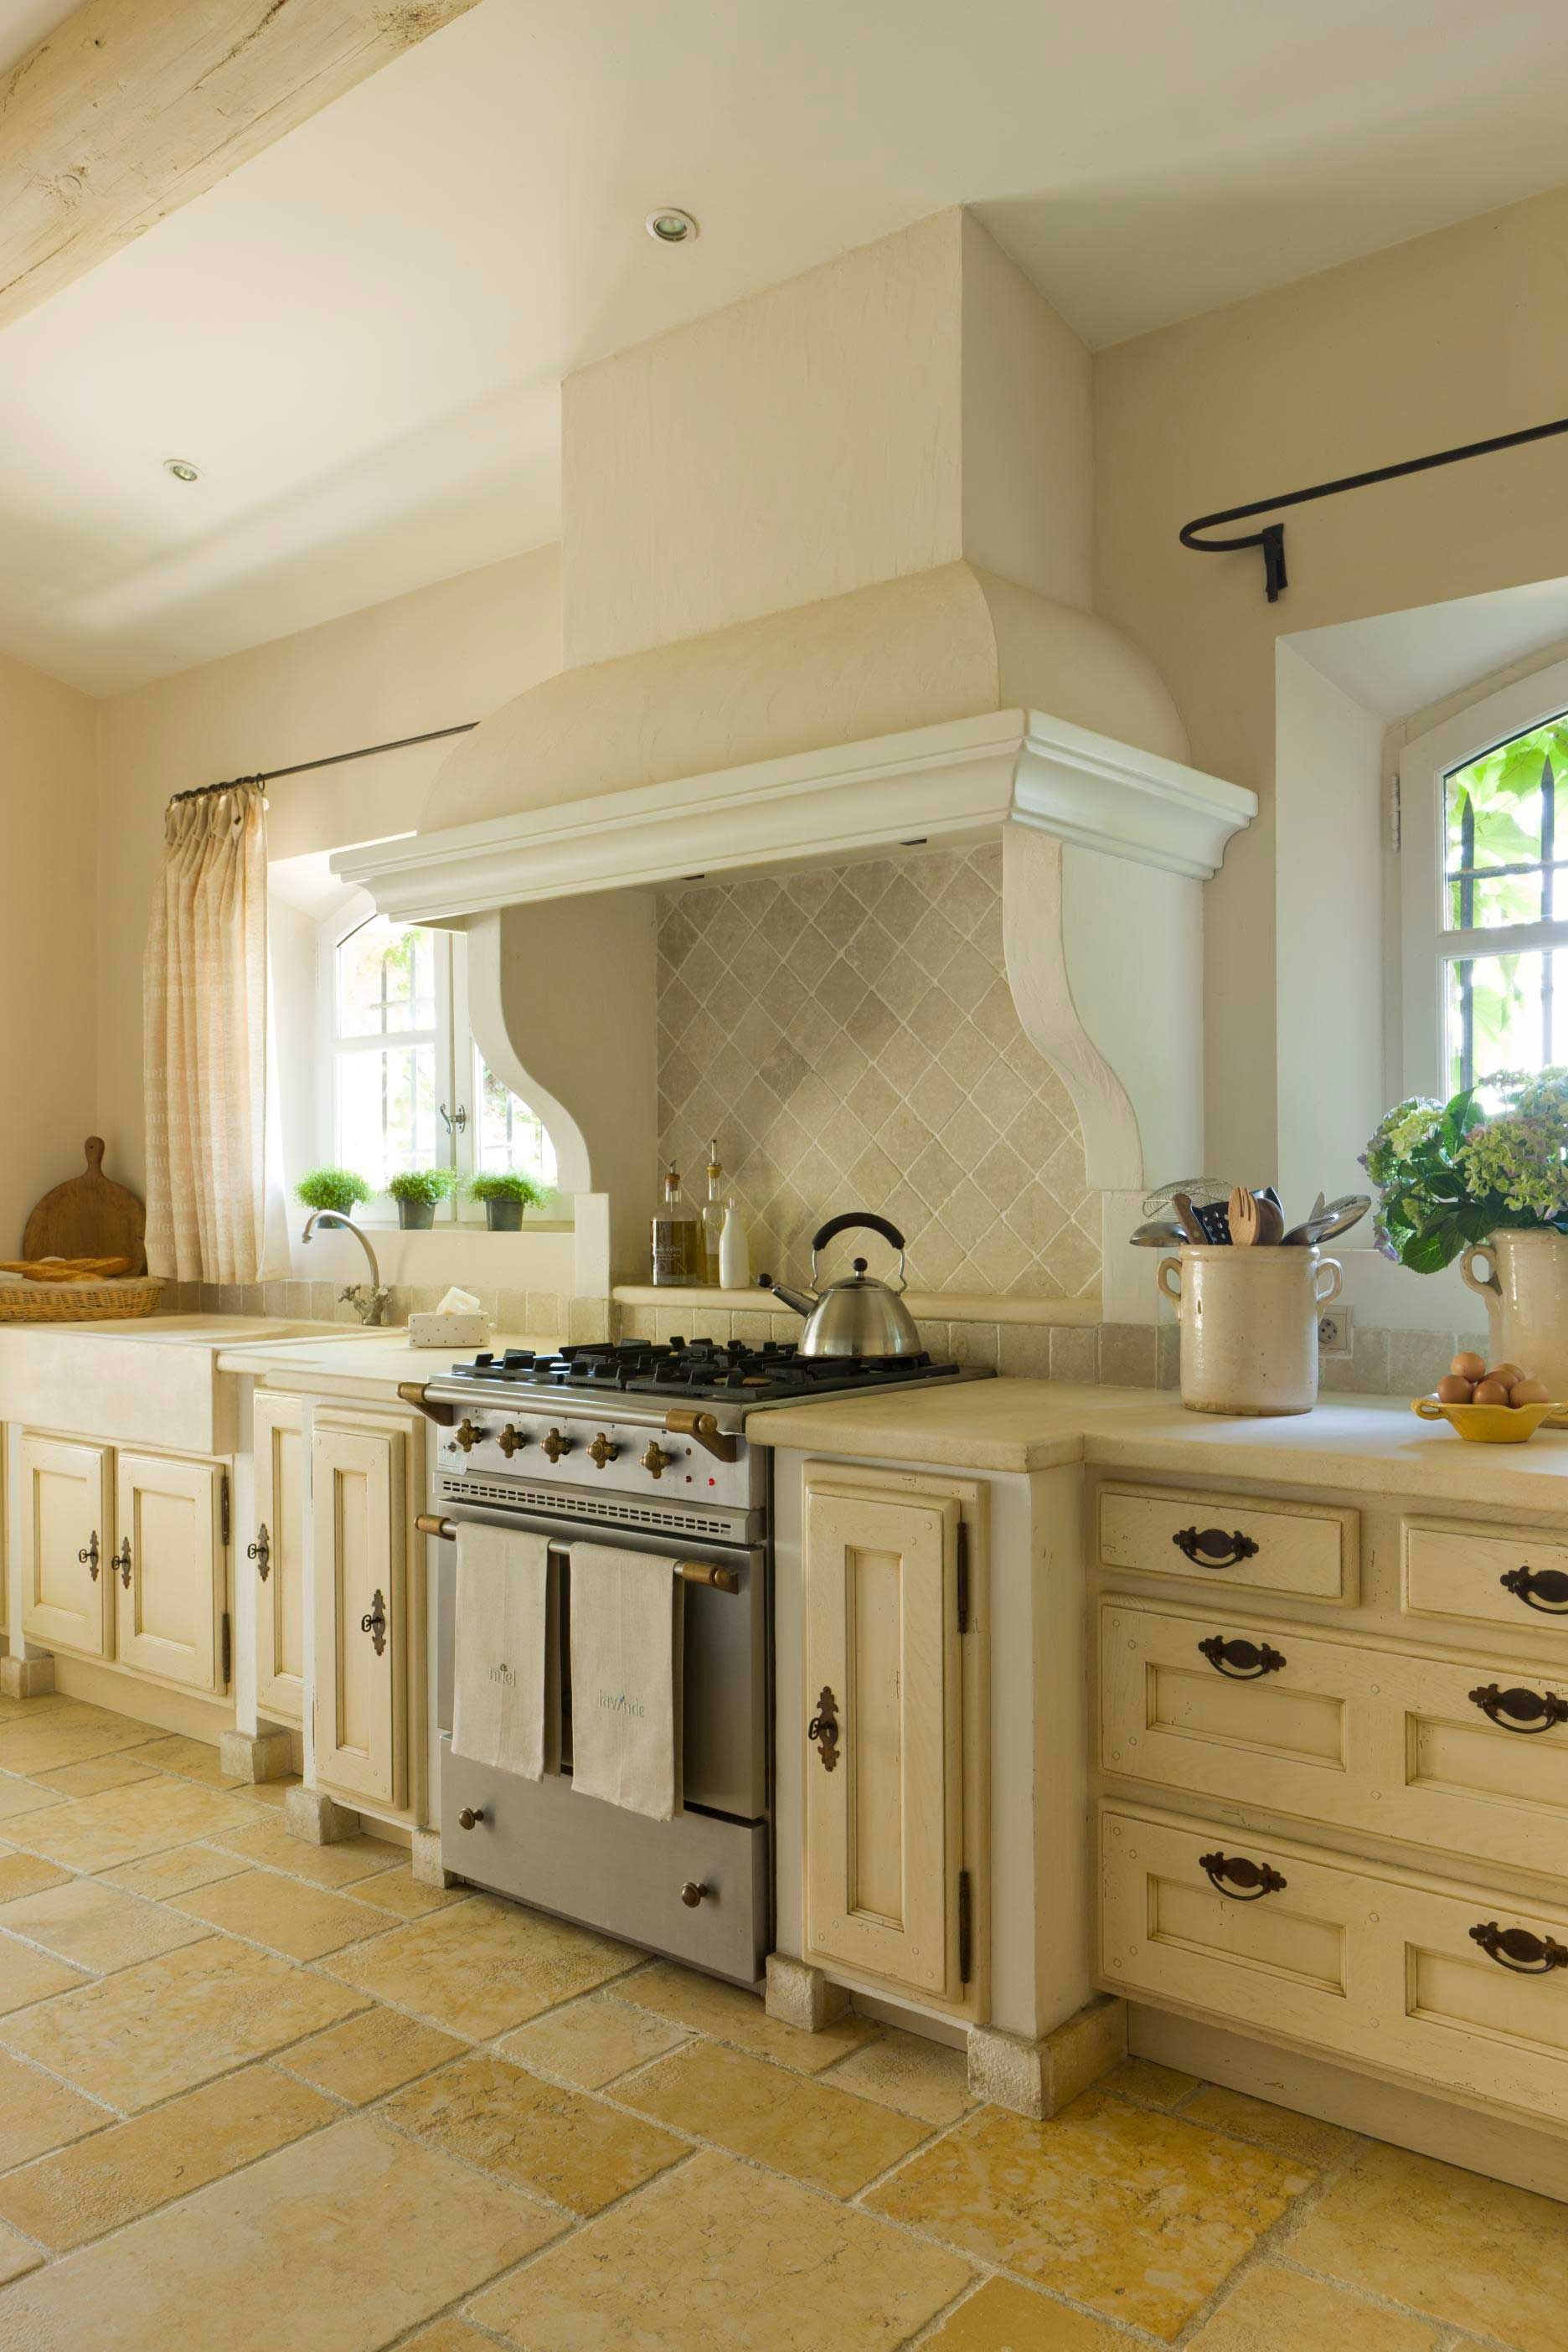 Rustic kitchen window decor  french country home that embraces history  traditional home  at